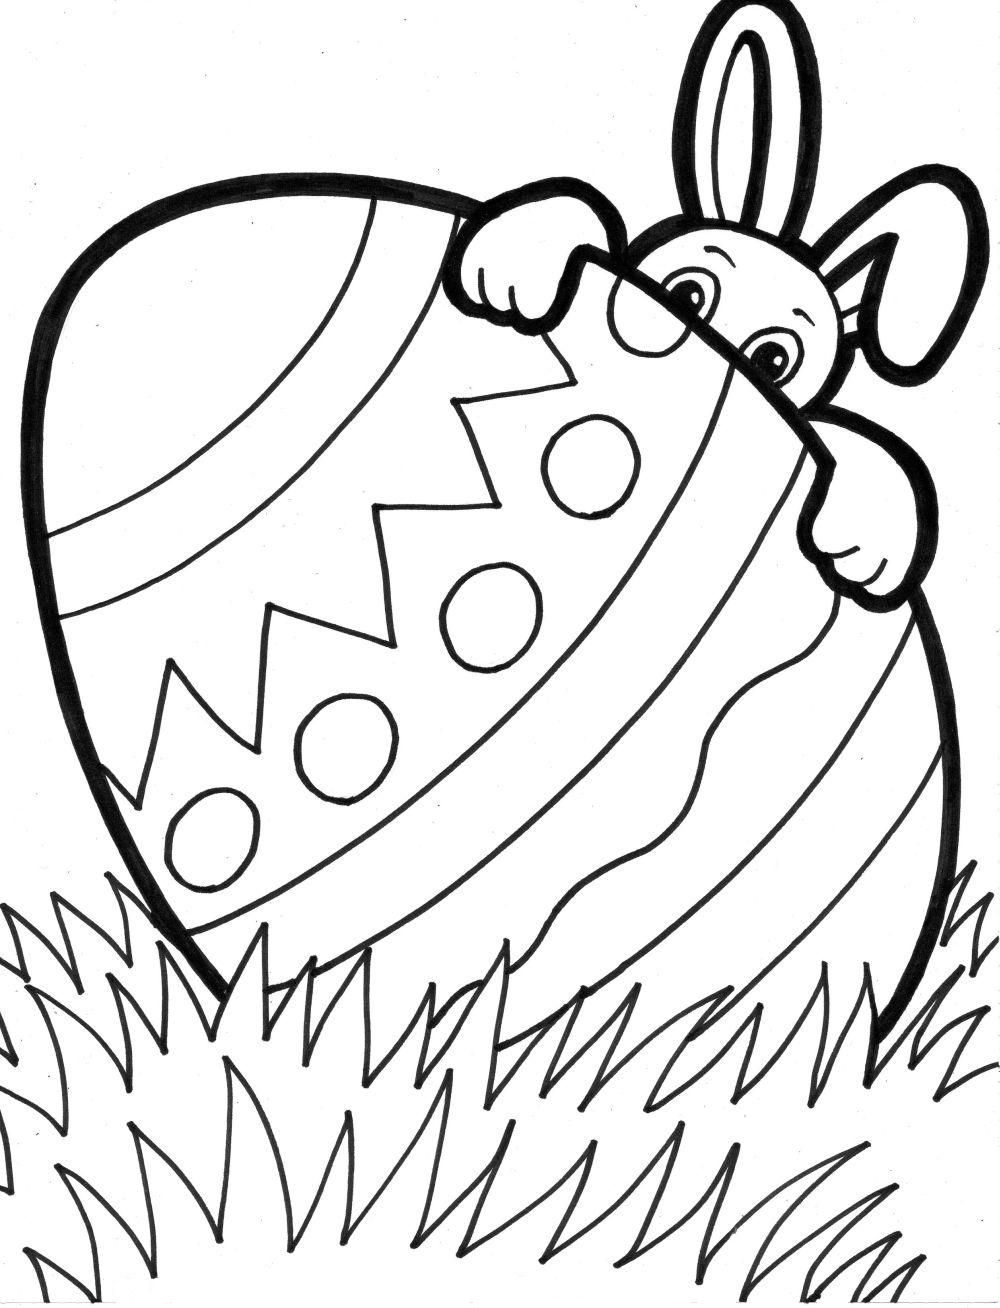 Coloring Pages for Kids for Easter Download 7c - Save it to your computer